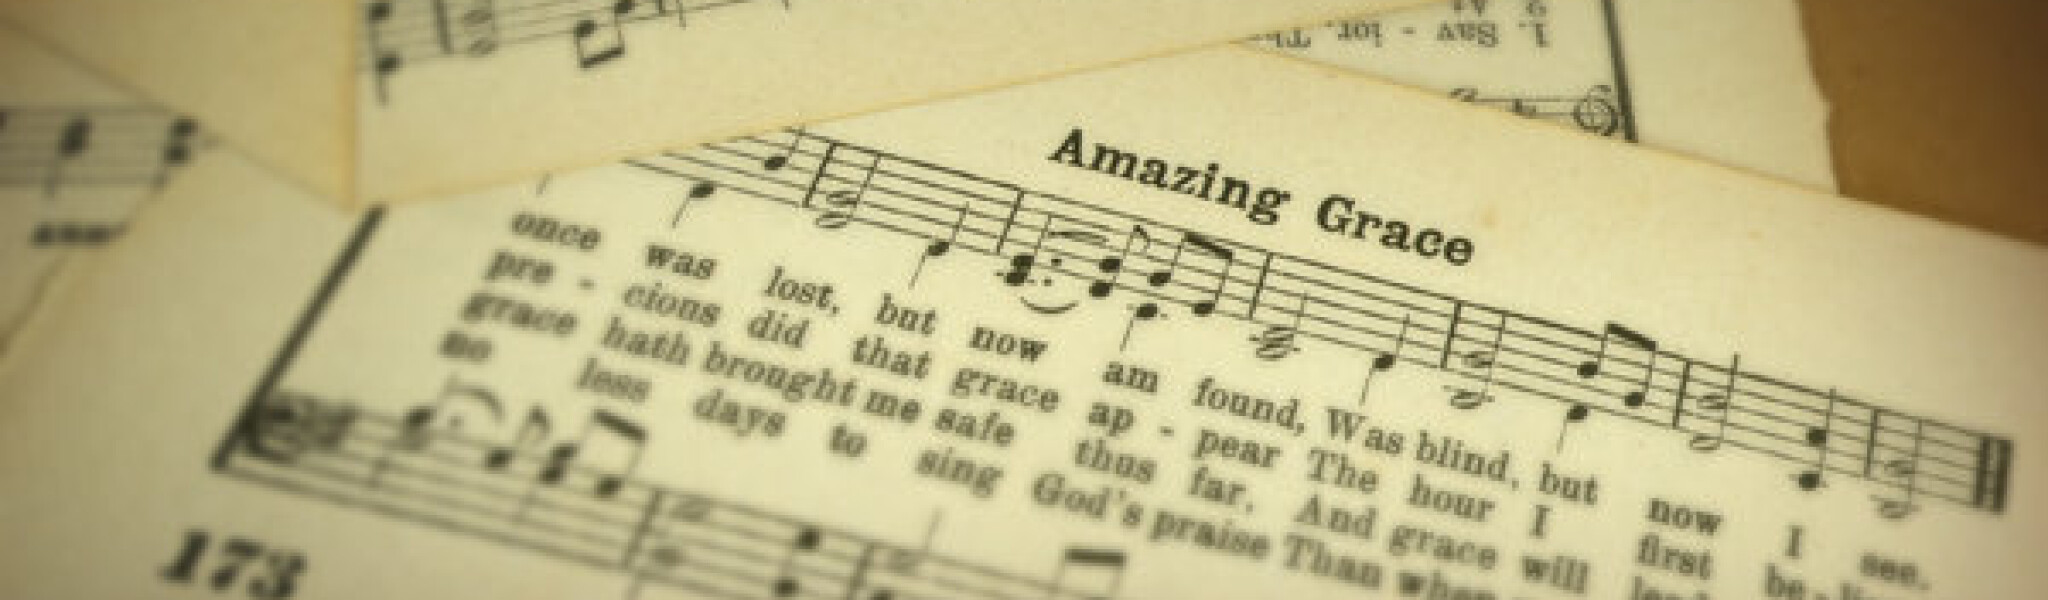 We have been counting down the 15 most requested traditional hymns of the faith. Today, read the history of these songs, listen to them, focus on Jesus' words and be still and know that He is God!